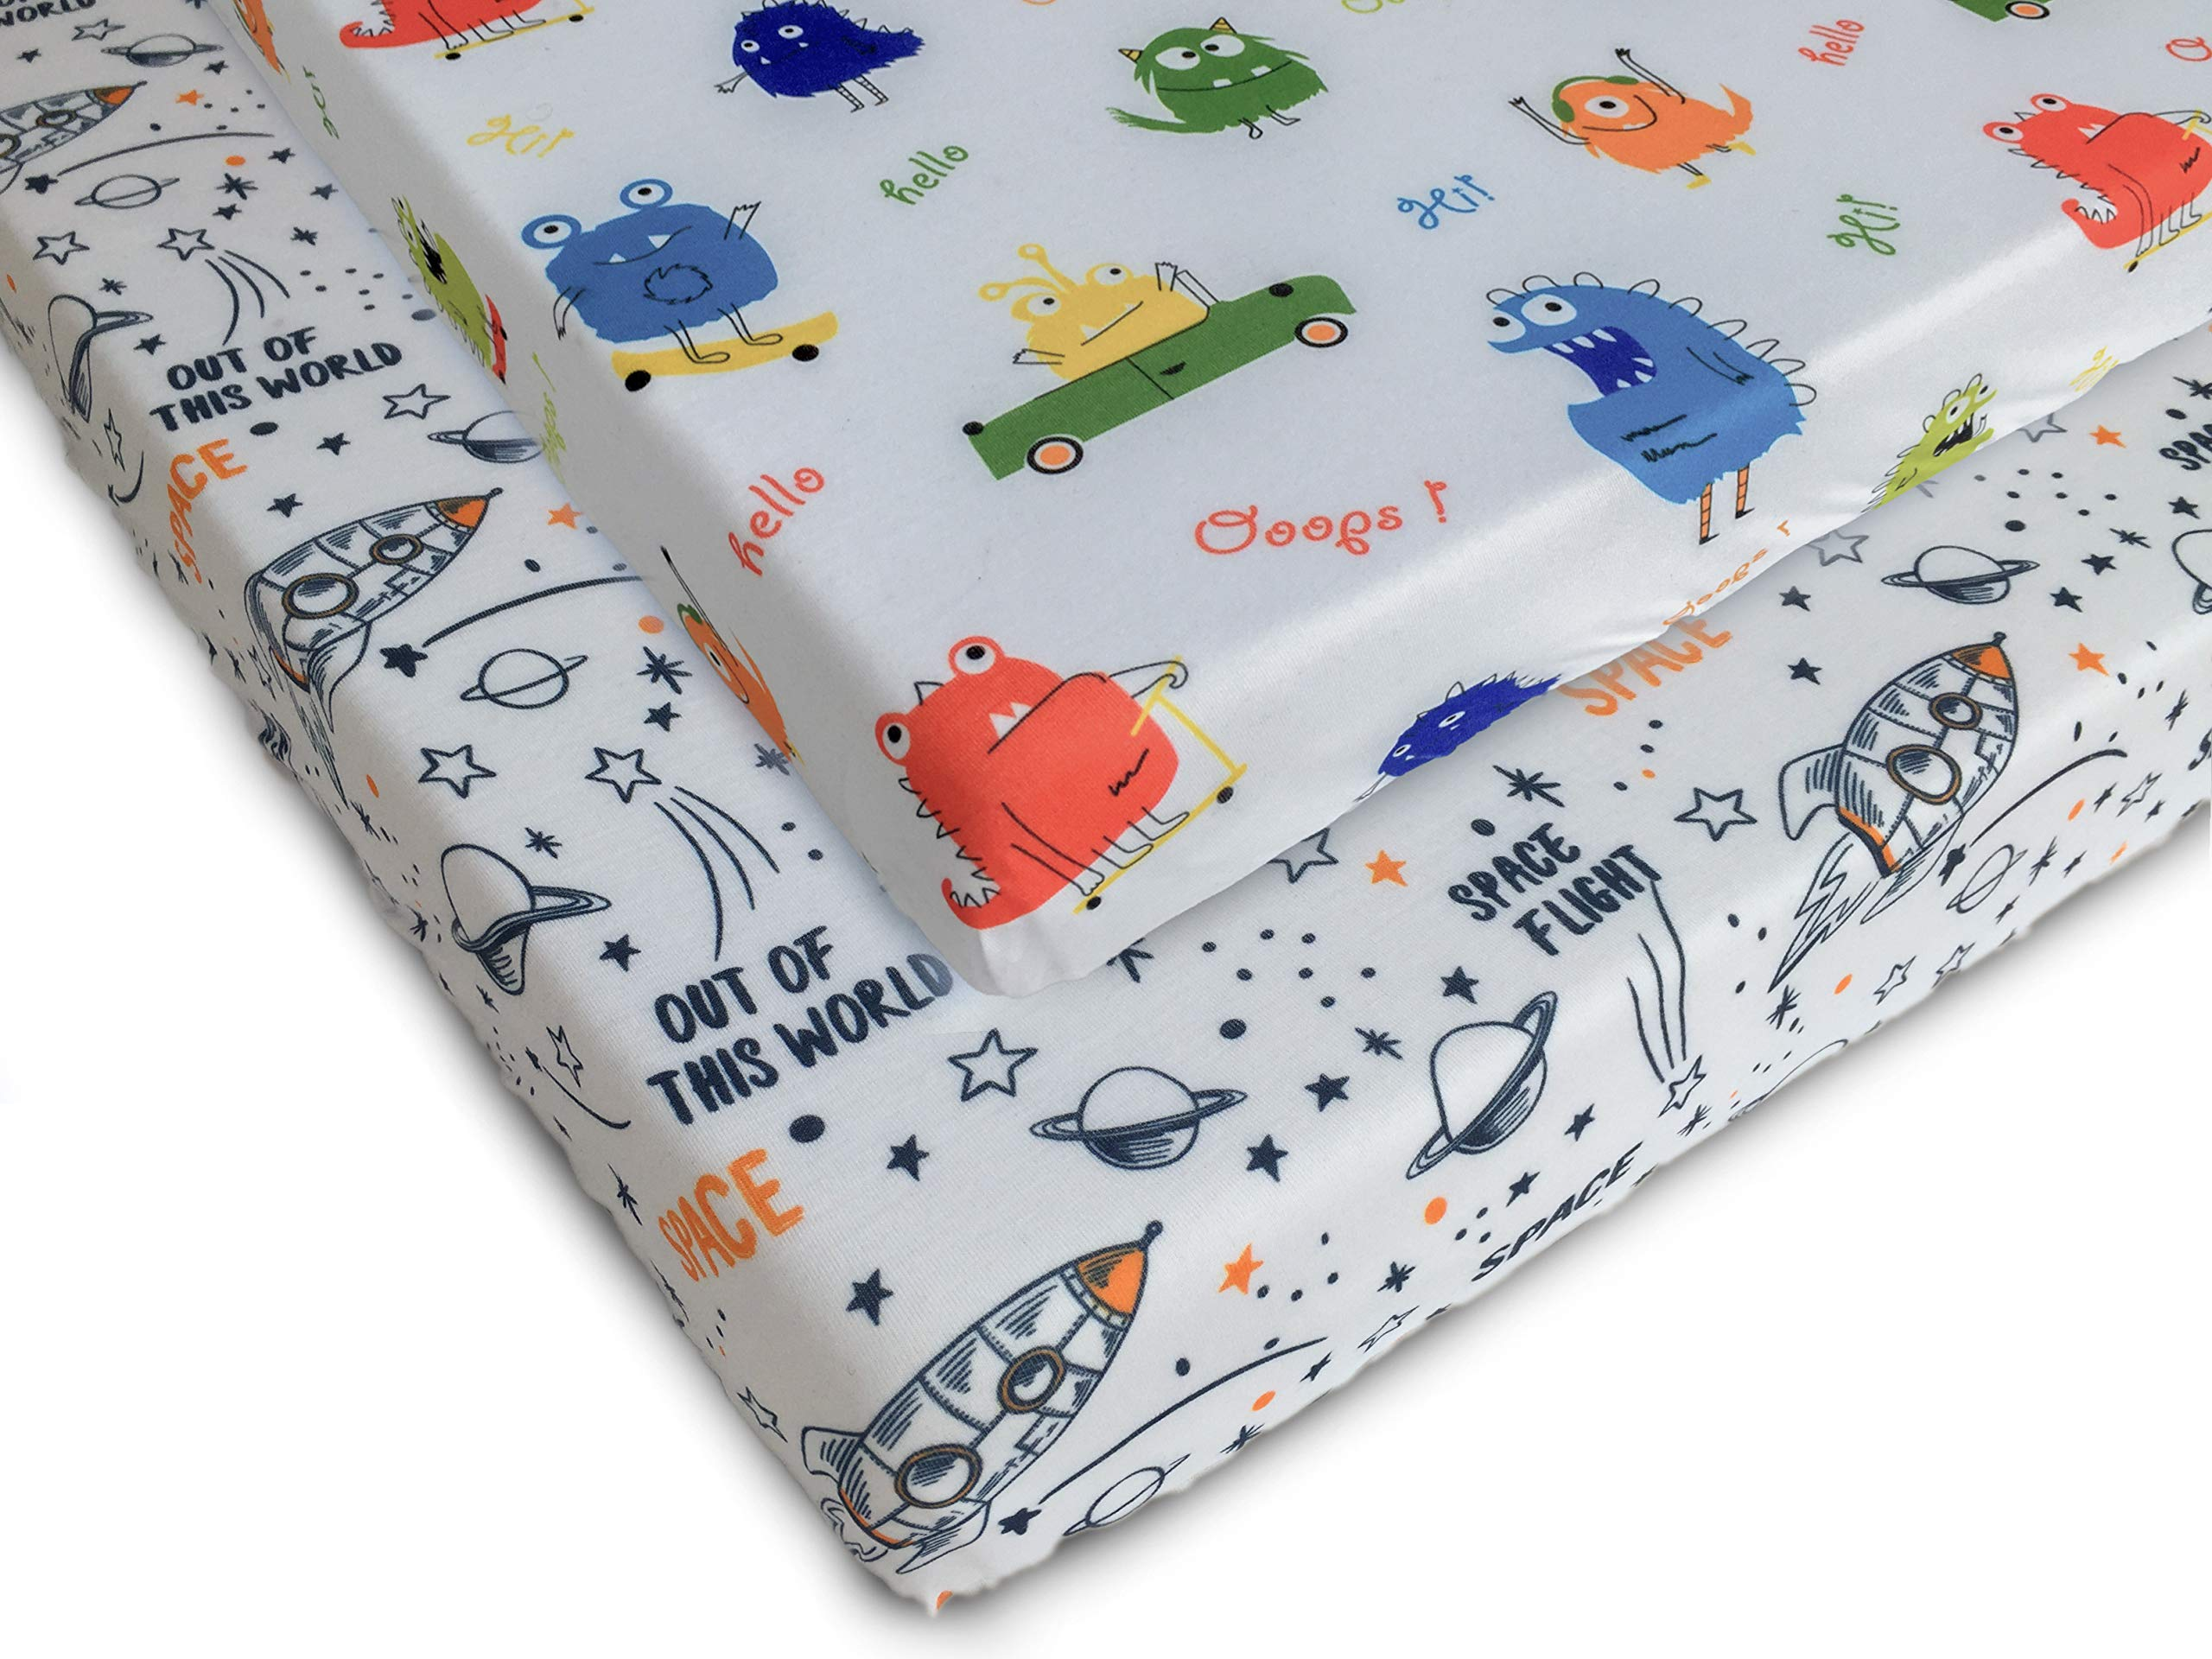 Pack n Play Fitted Pack n Play Playard Sheet Set-2 Pack Portable Mini Crib Sheets,Playard Mattress Cover,Super Soft Material, Cute Monsters